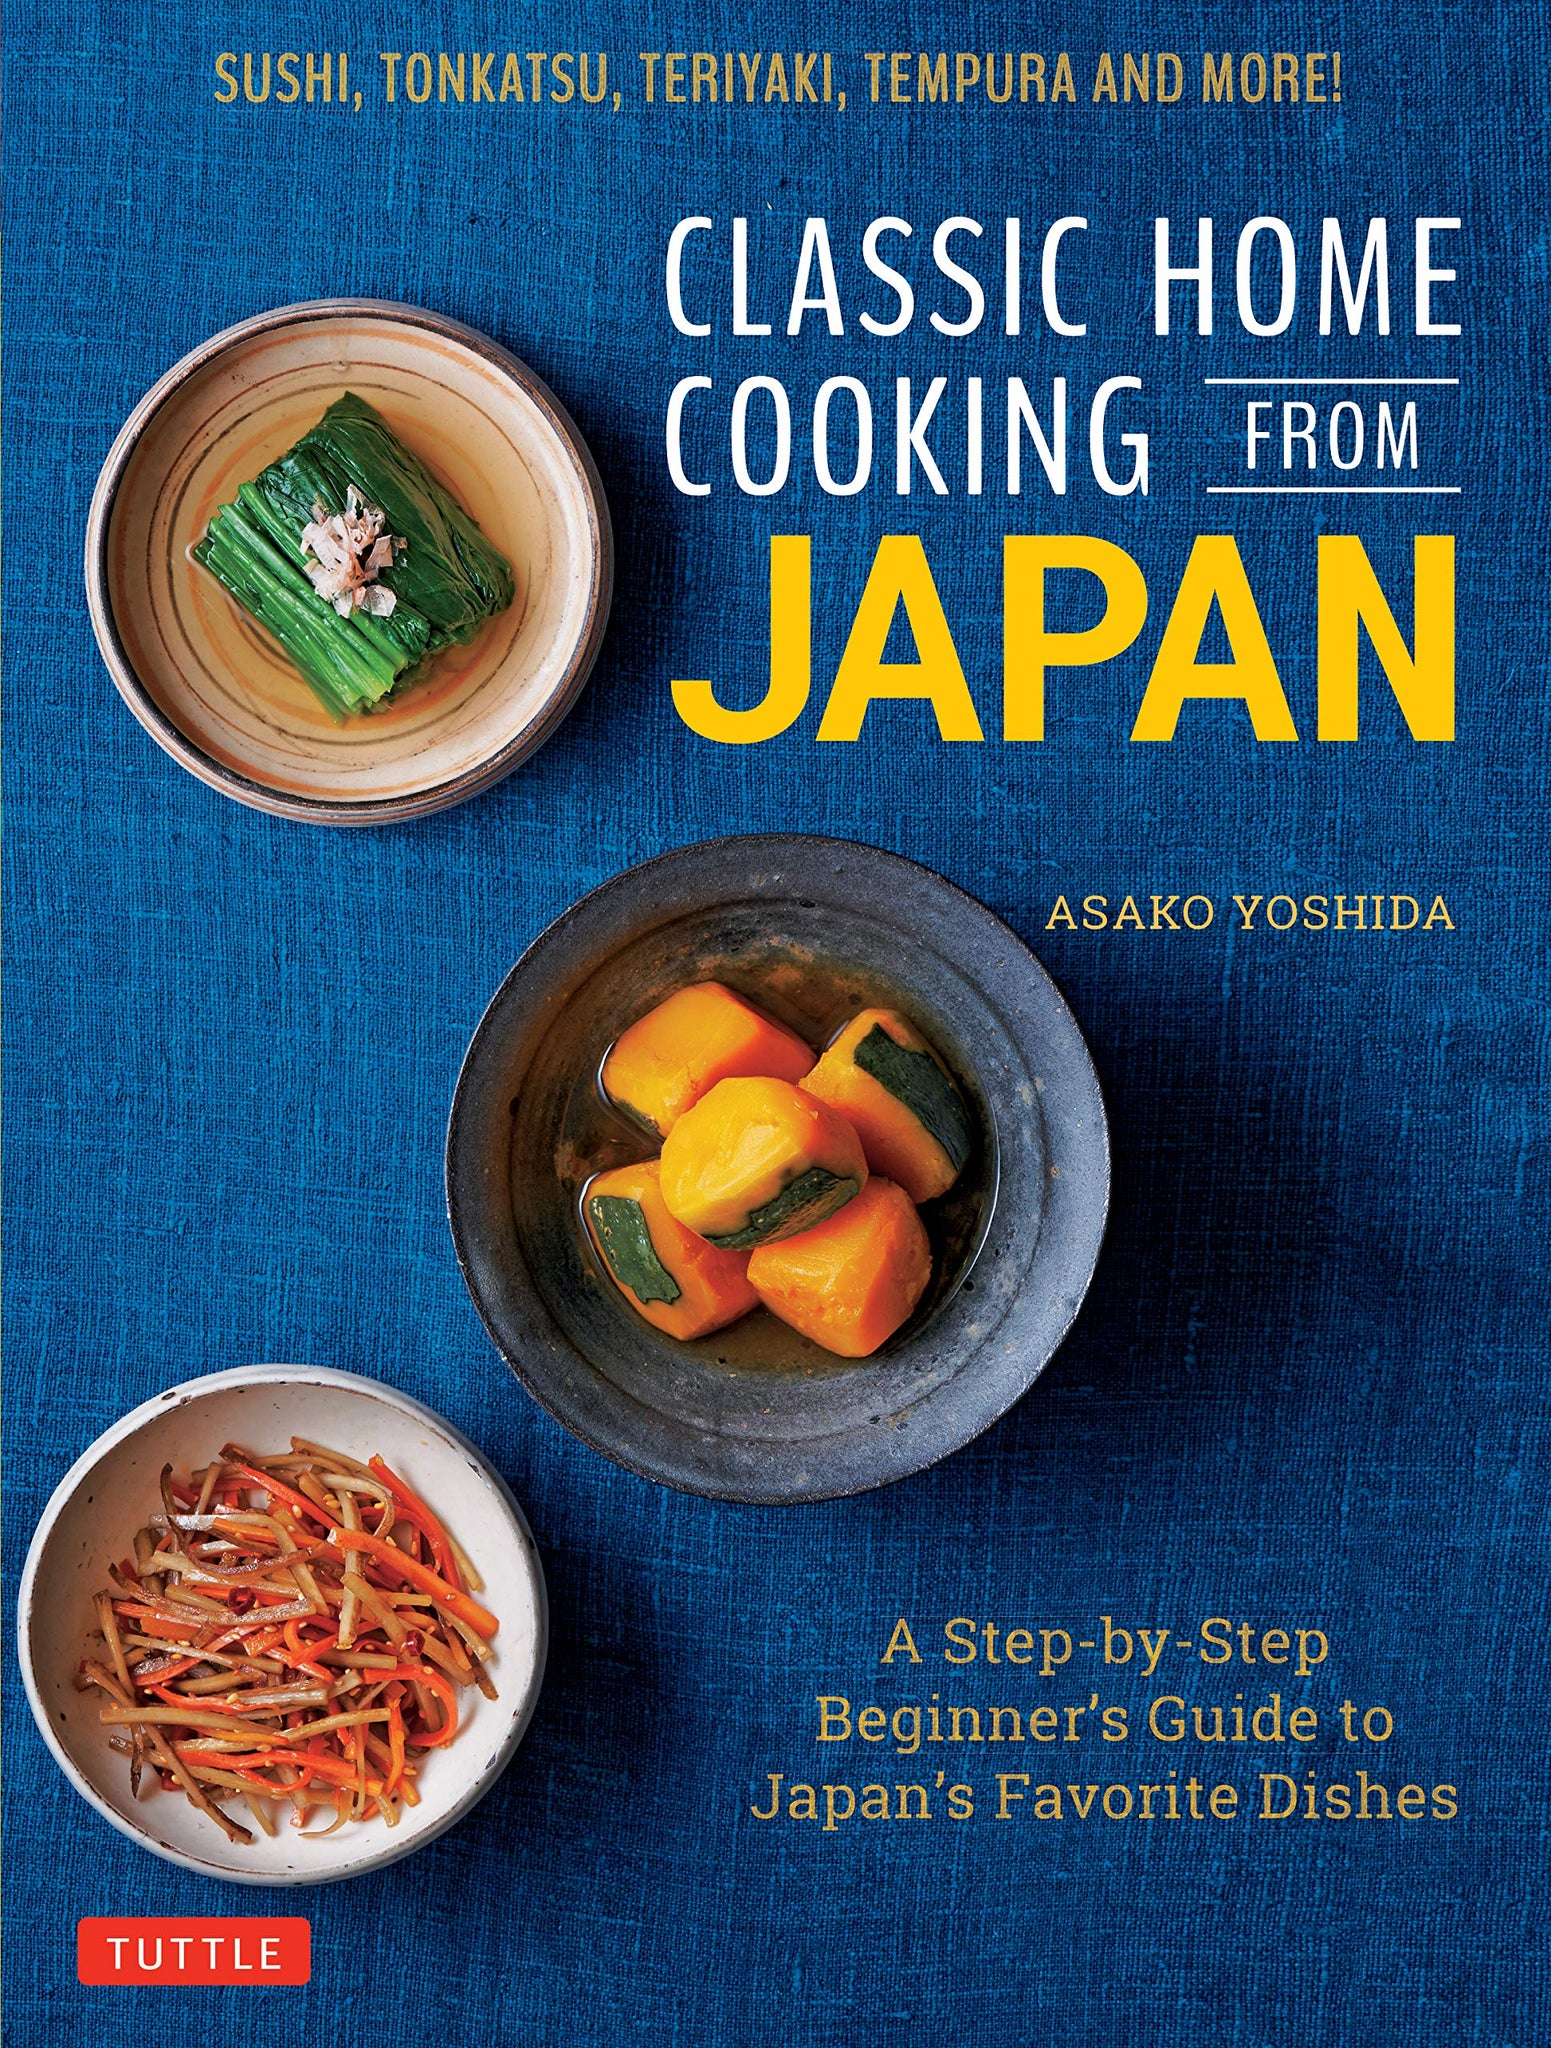 Classic Home Cooking from JAPAN